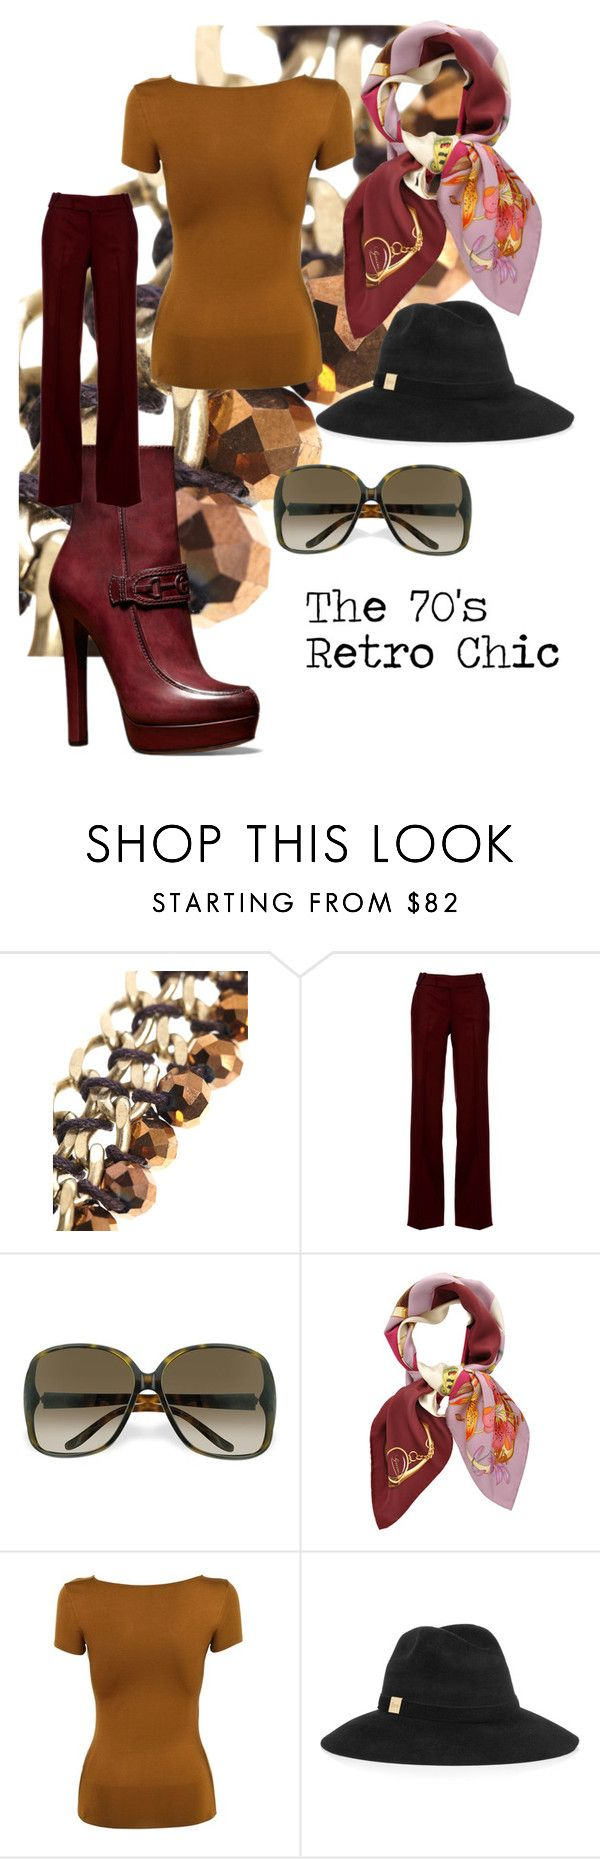 The 70's Retro Chic by mymodette on Polyvore featuring Gucci and Weekend  Max Mara